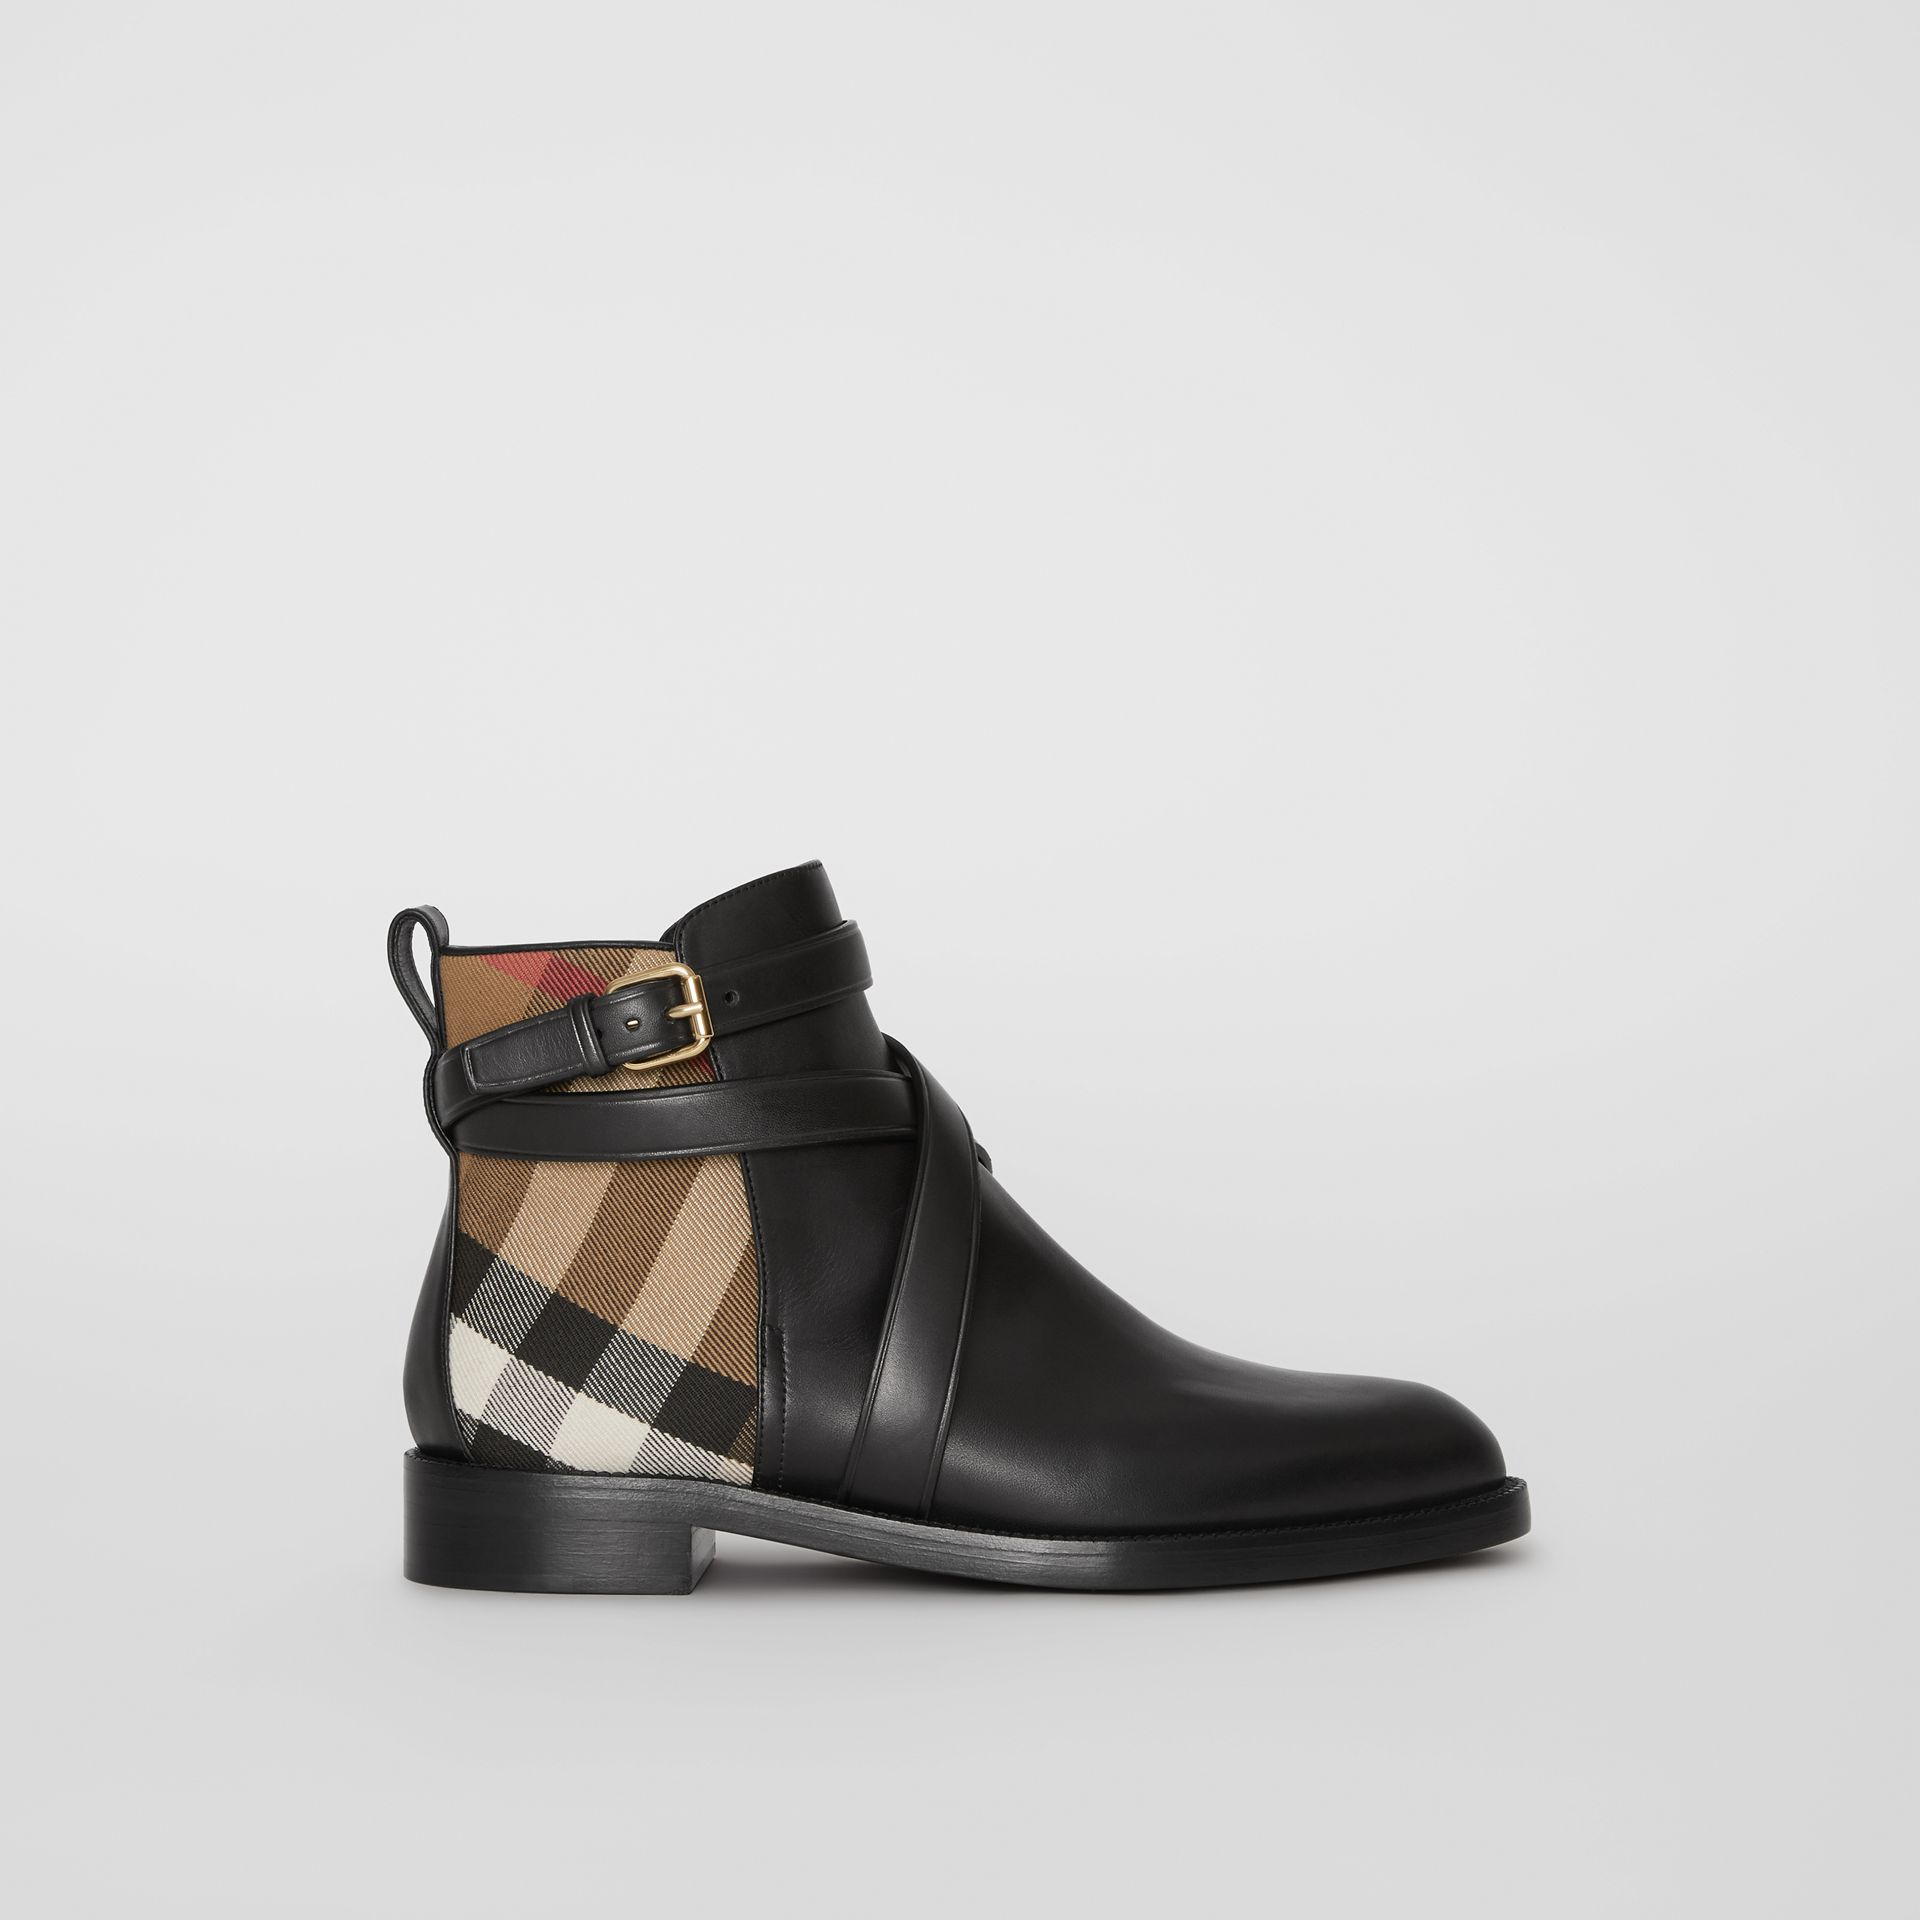 House Check and Leather Ankle Boots in Black - Women | Burberry Canada - gallery image 5